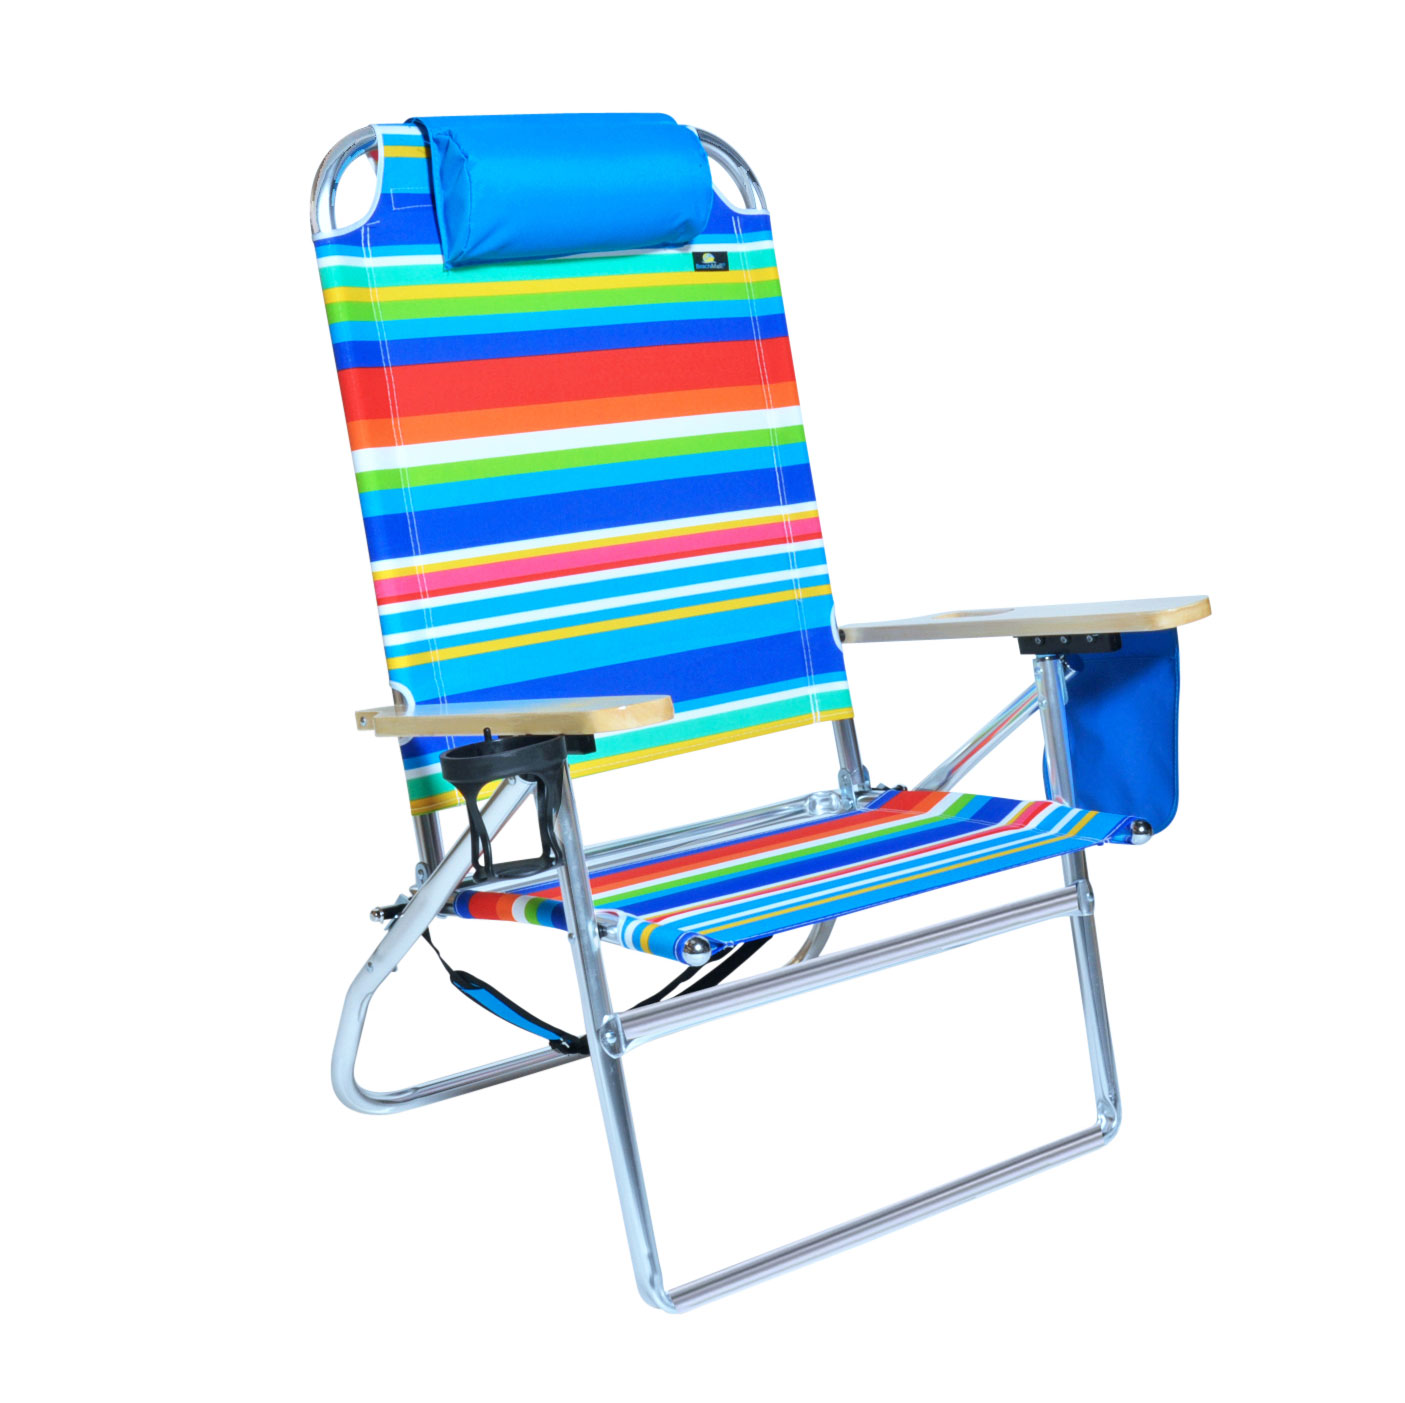 Extra High Seat Heavy Duty 4 Position Beach Chair w Drink Holder